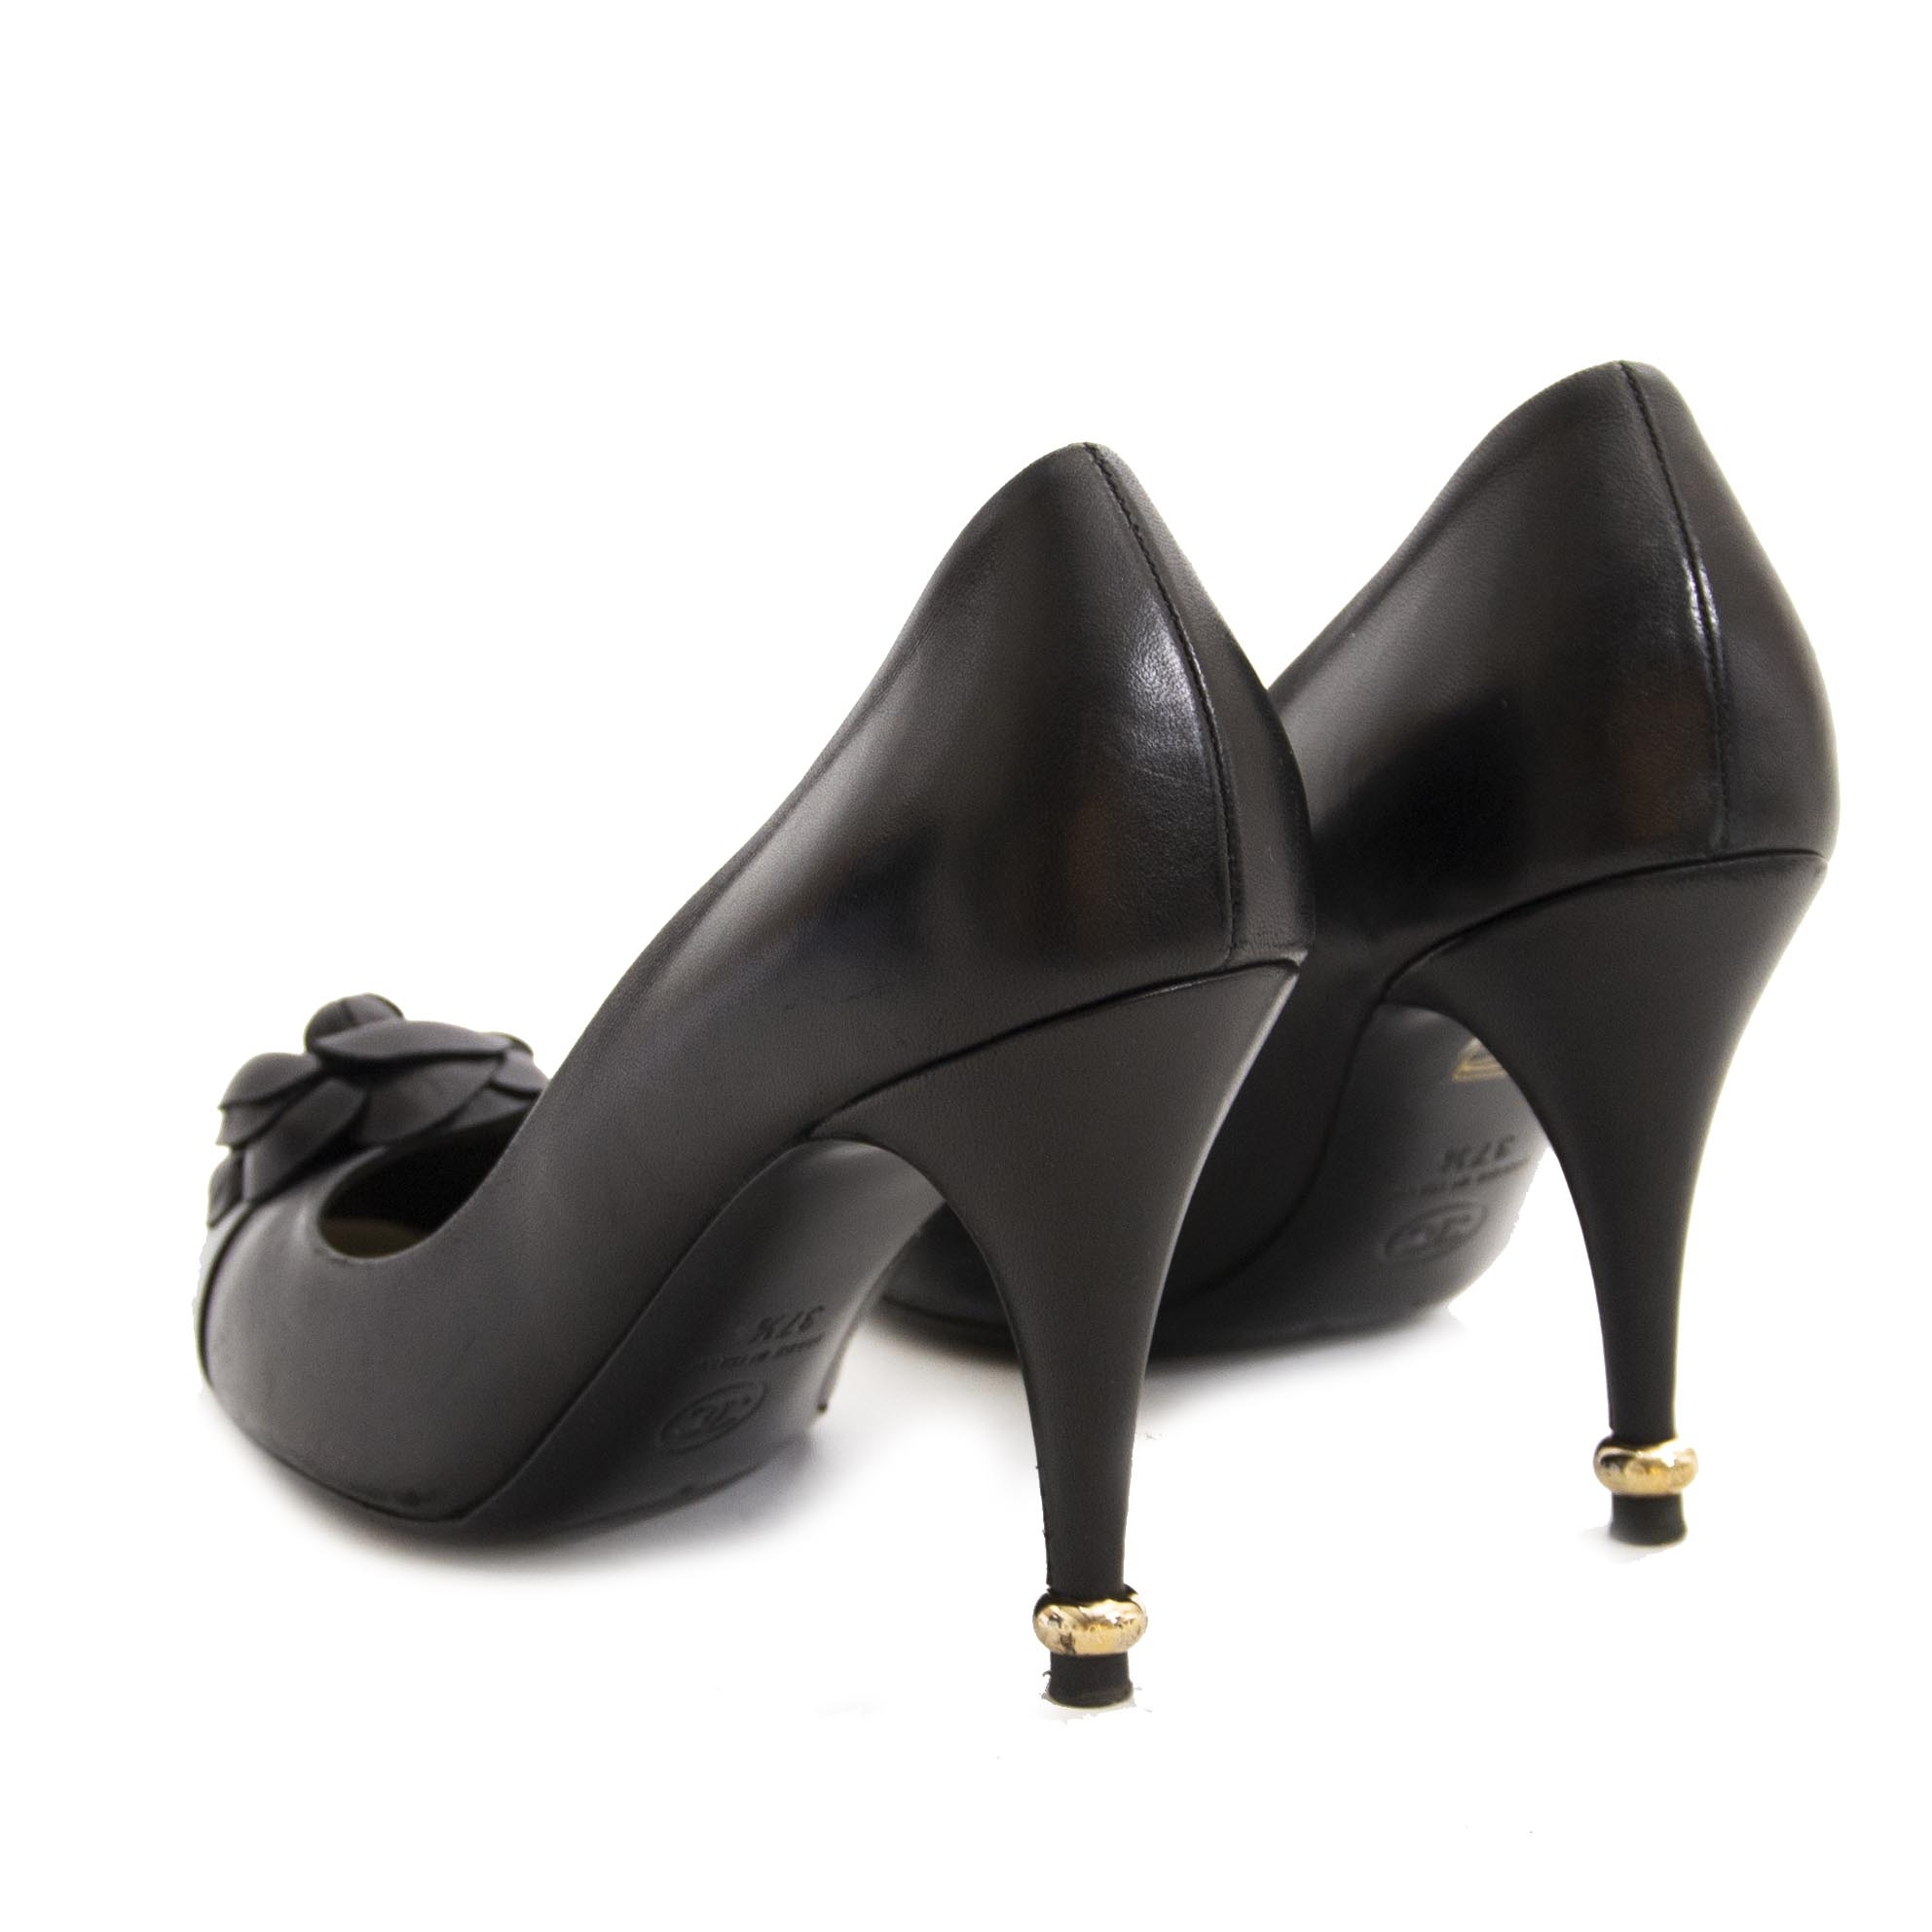 Chanel Black Camellia Heels - 37,5 (Labellov) For the best price at LabelLov. Pour le meilleur prix à LabelLOV. Voor de beste prijs bij LabelLOV.